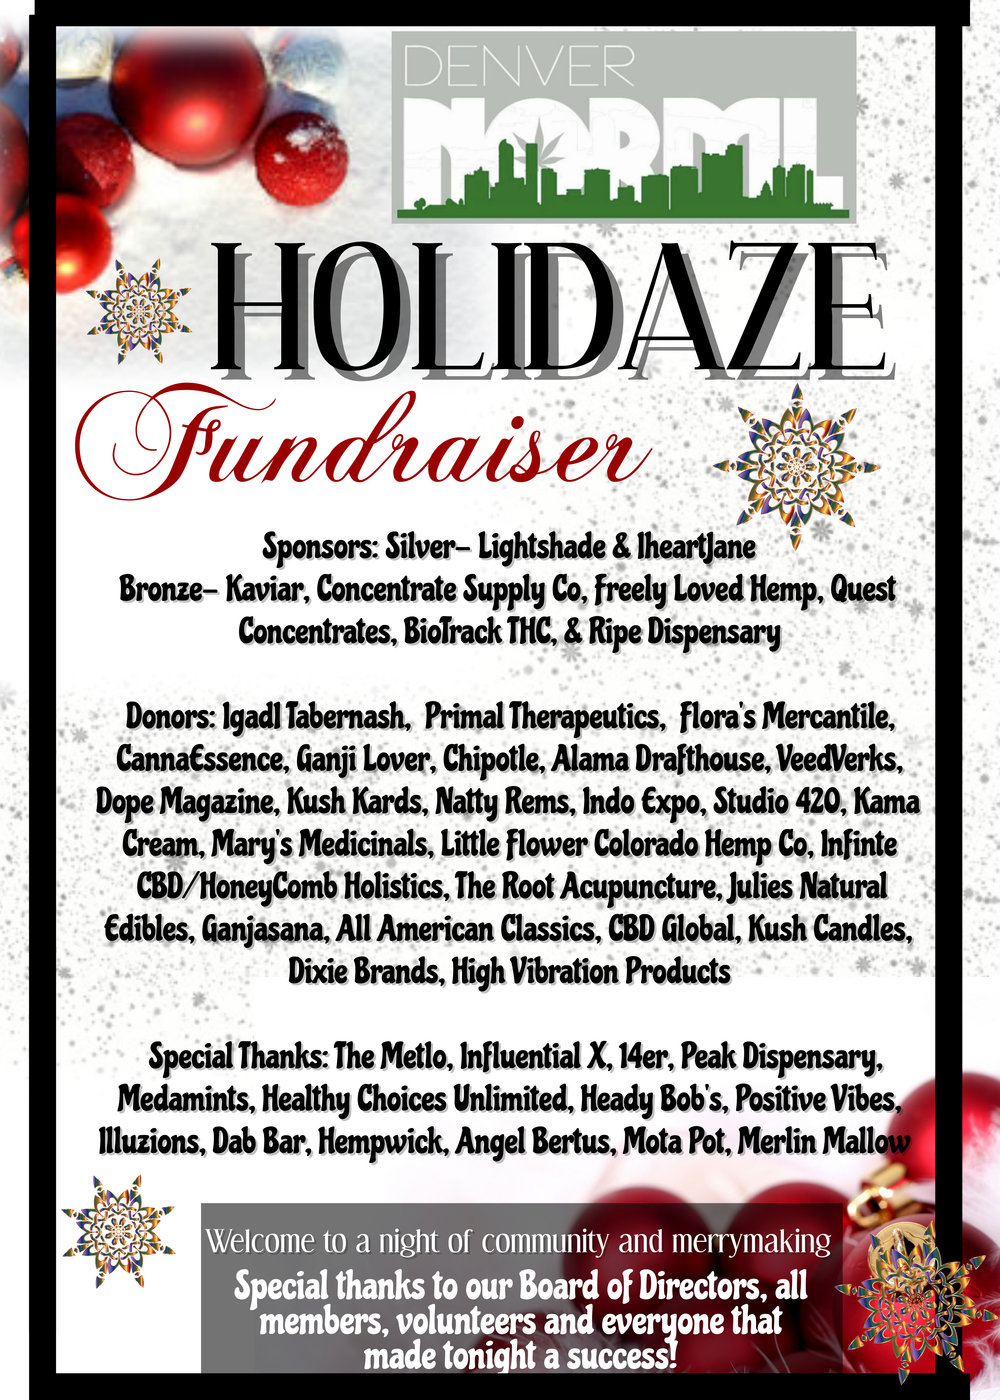 Our event last week was a huge success. We had over 300 attendees and raised almost $5,000 for our cause. None of it would have been possible without our volunteers, sponsors and donors. Thank you so much to everyone that made the night a success. We can't wait for next years Holidaze Fundraiser. If you would like to be involved send us an email anytime: denverisnorml@gmail.com